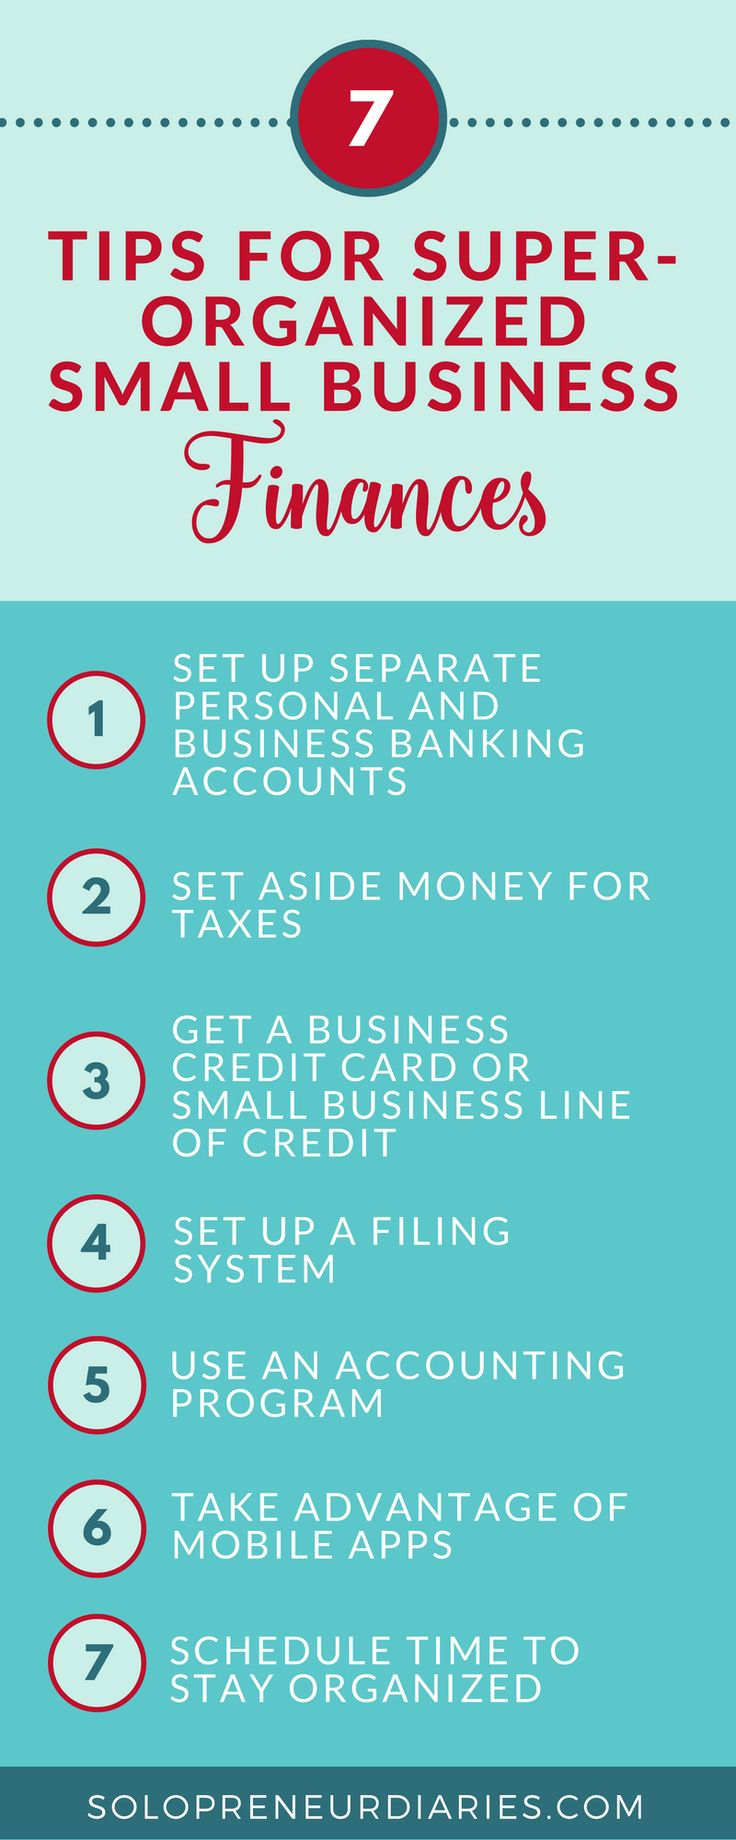 As a small business owner, there is always something that needs to be done and it's easy to put off finances for another day. And that's how chaos happens. Stay on top of your small business finances with these seven simple tips.